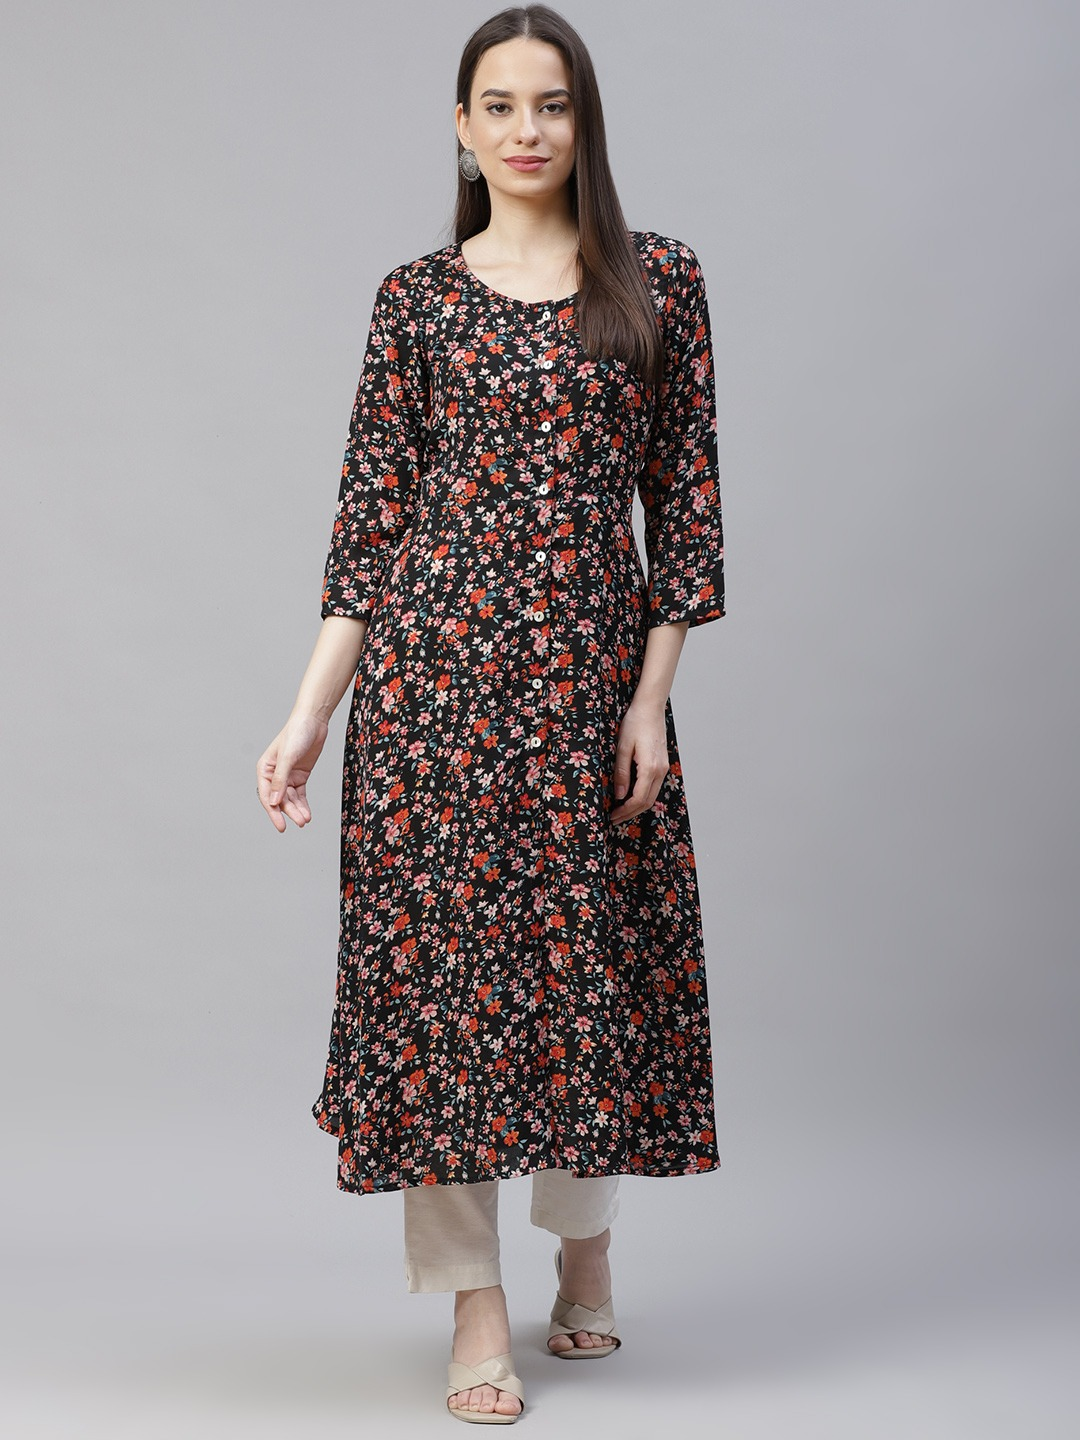 Jompers | Black floral print flaired kurta